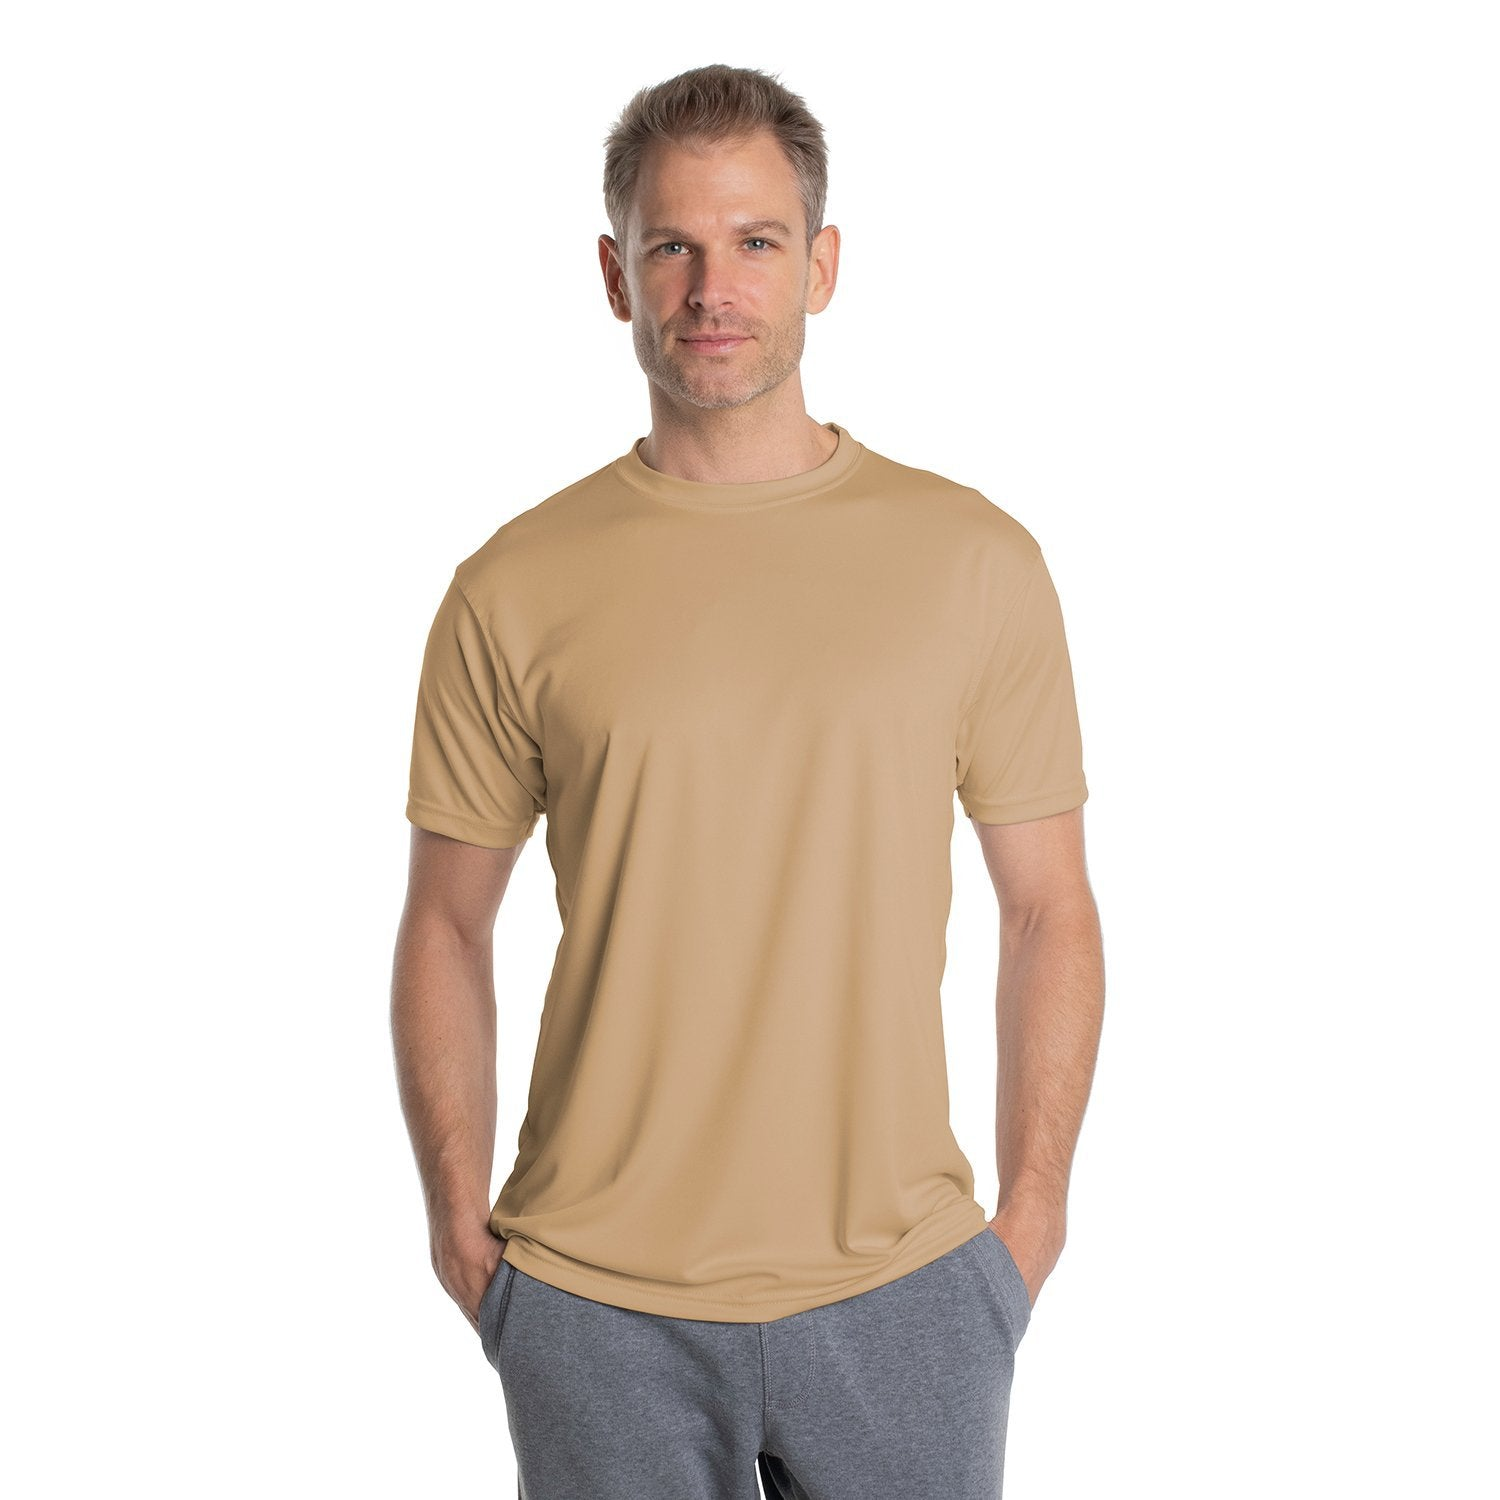 M100TN Solar Short Sleeve - Tan